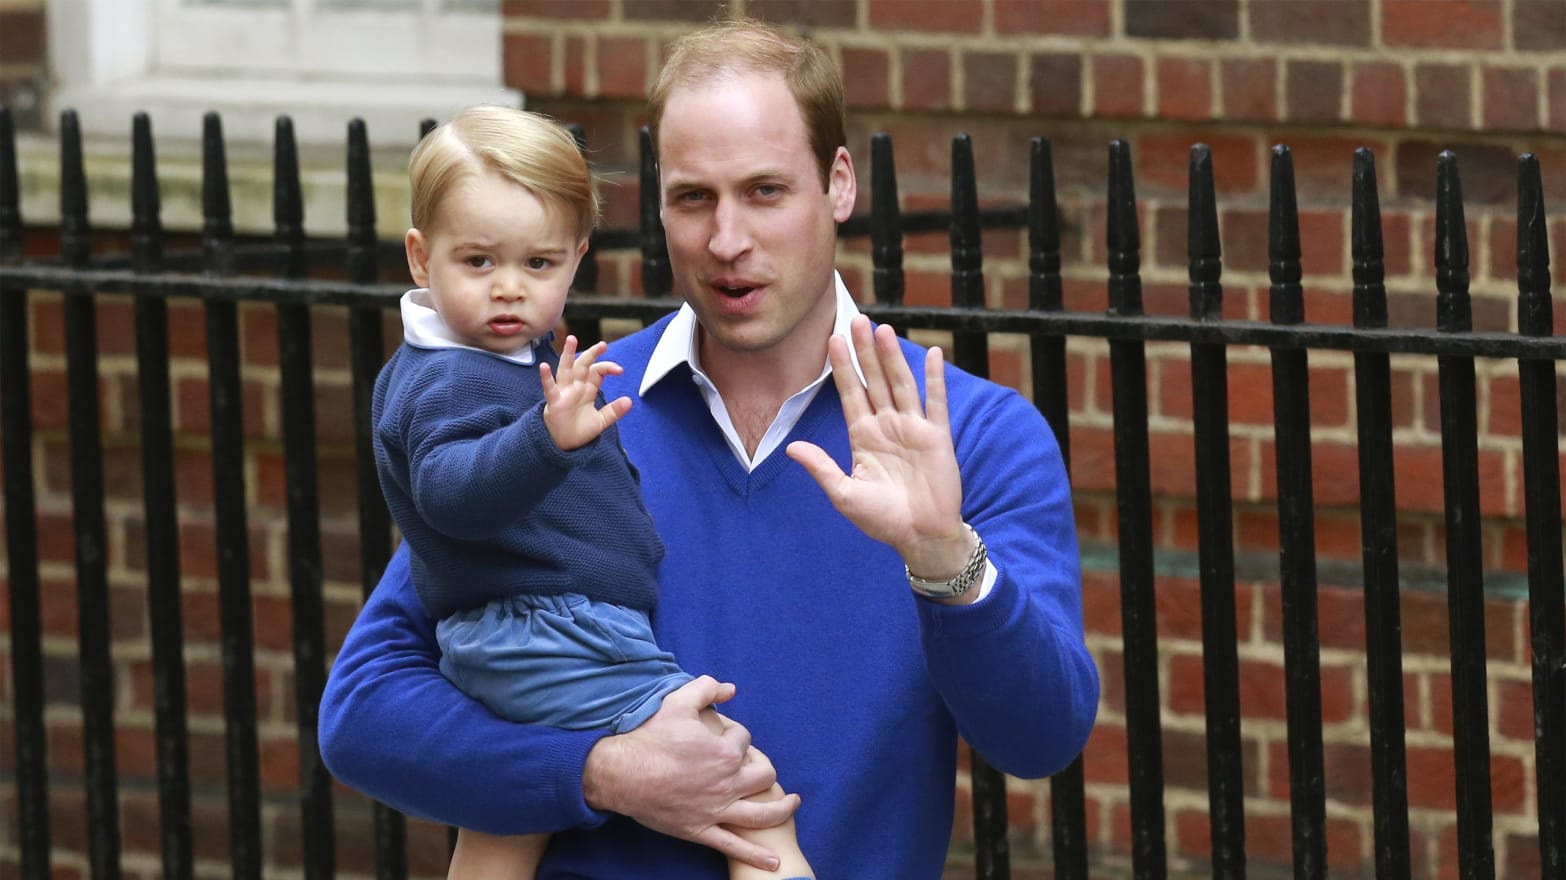 William and Kate Launch Attack on Paparazzi Pursuing Prince George